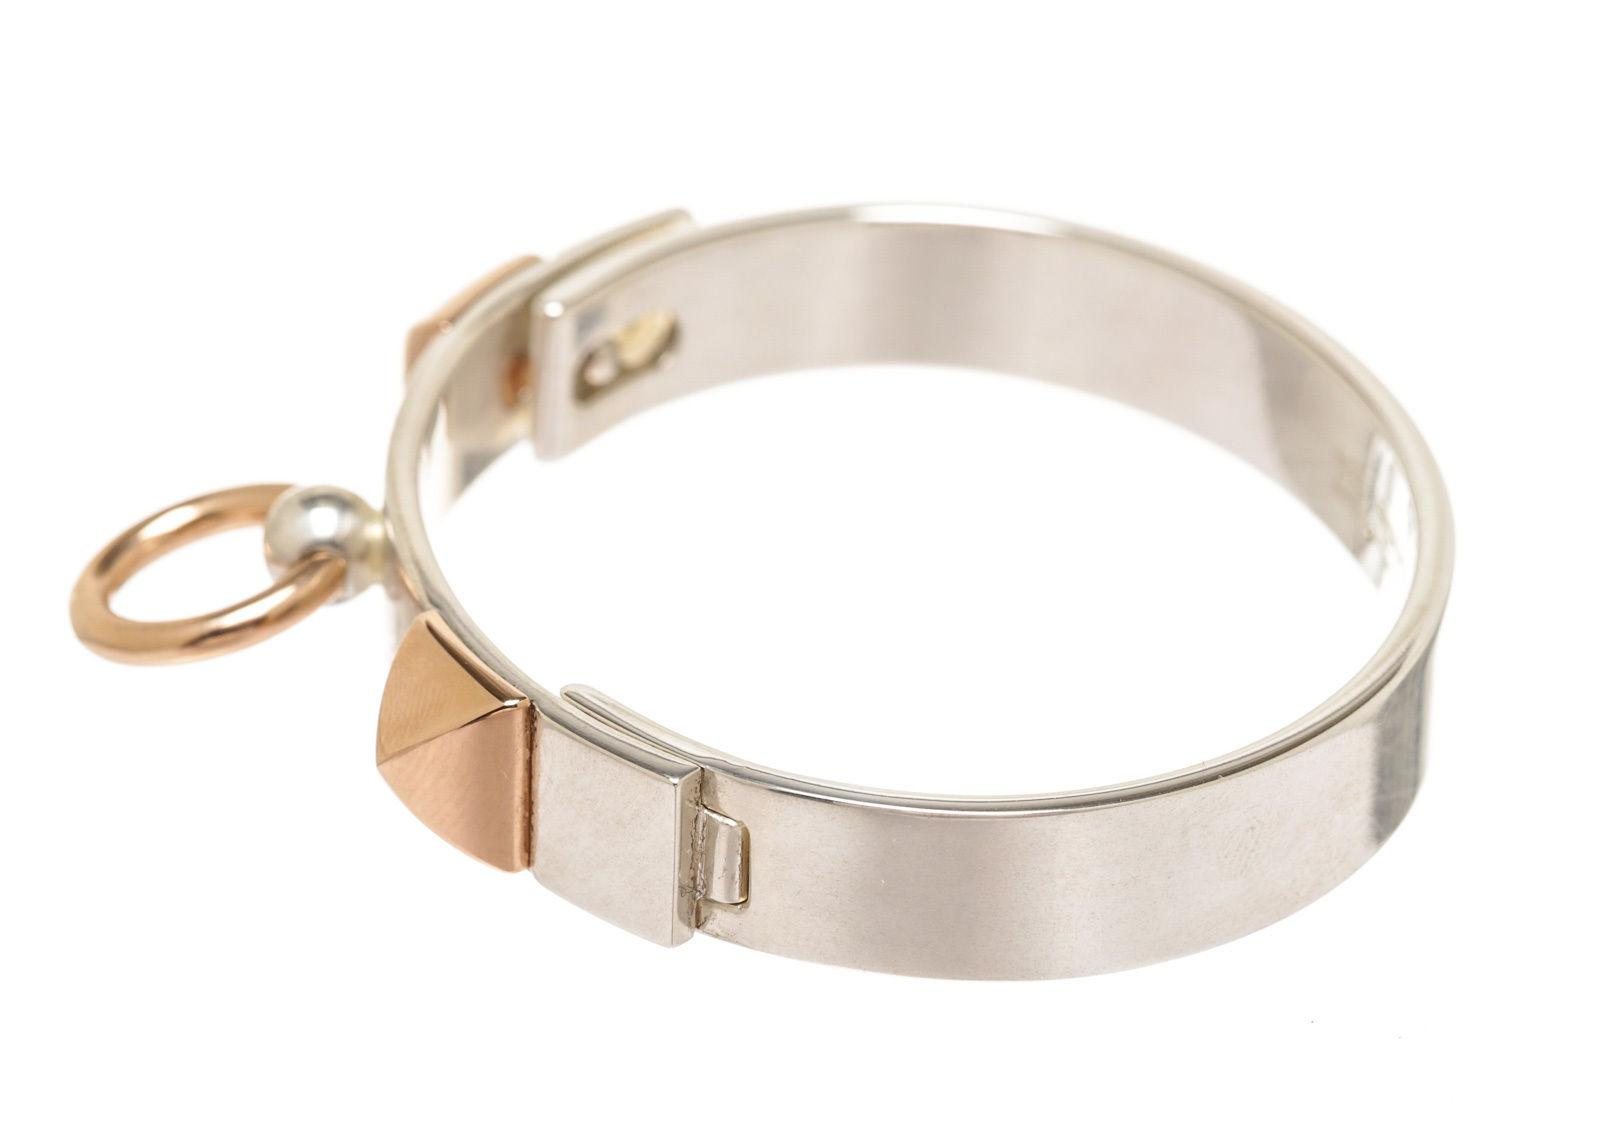 b4669a8e106 ... coupon code hermès silver and rose gold cdc collier de chien 209925 sh bracelet  tradesy bd66c